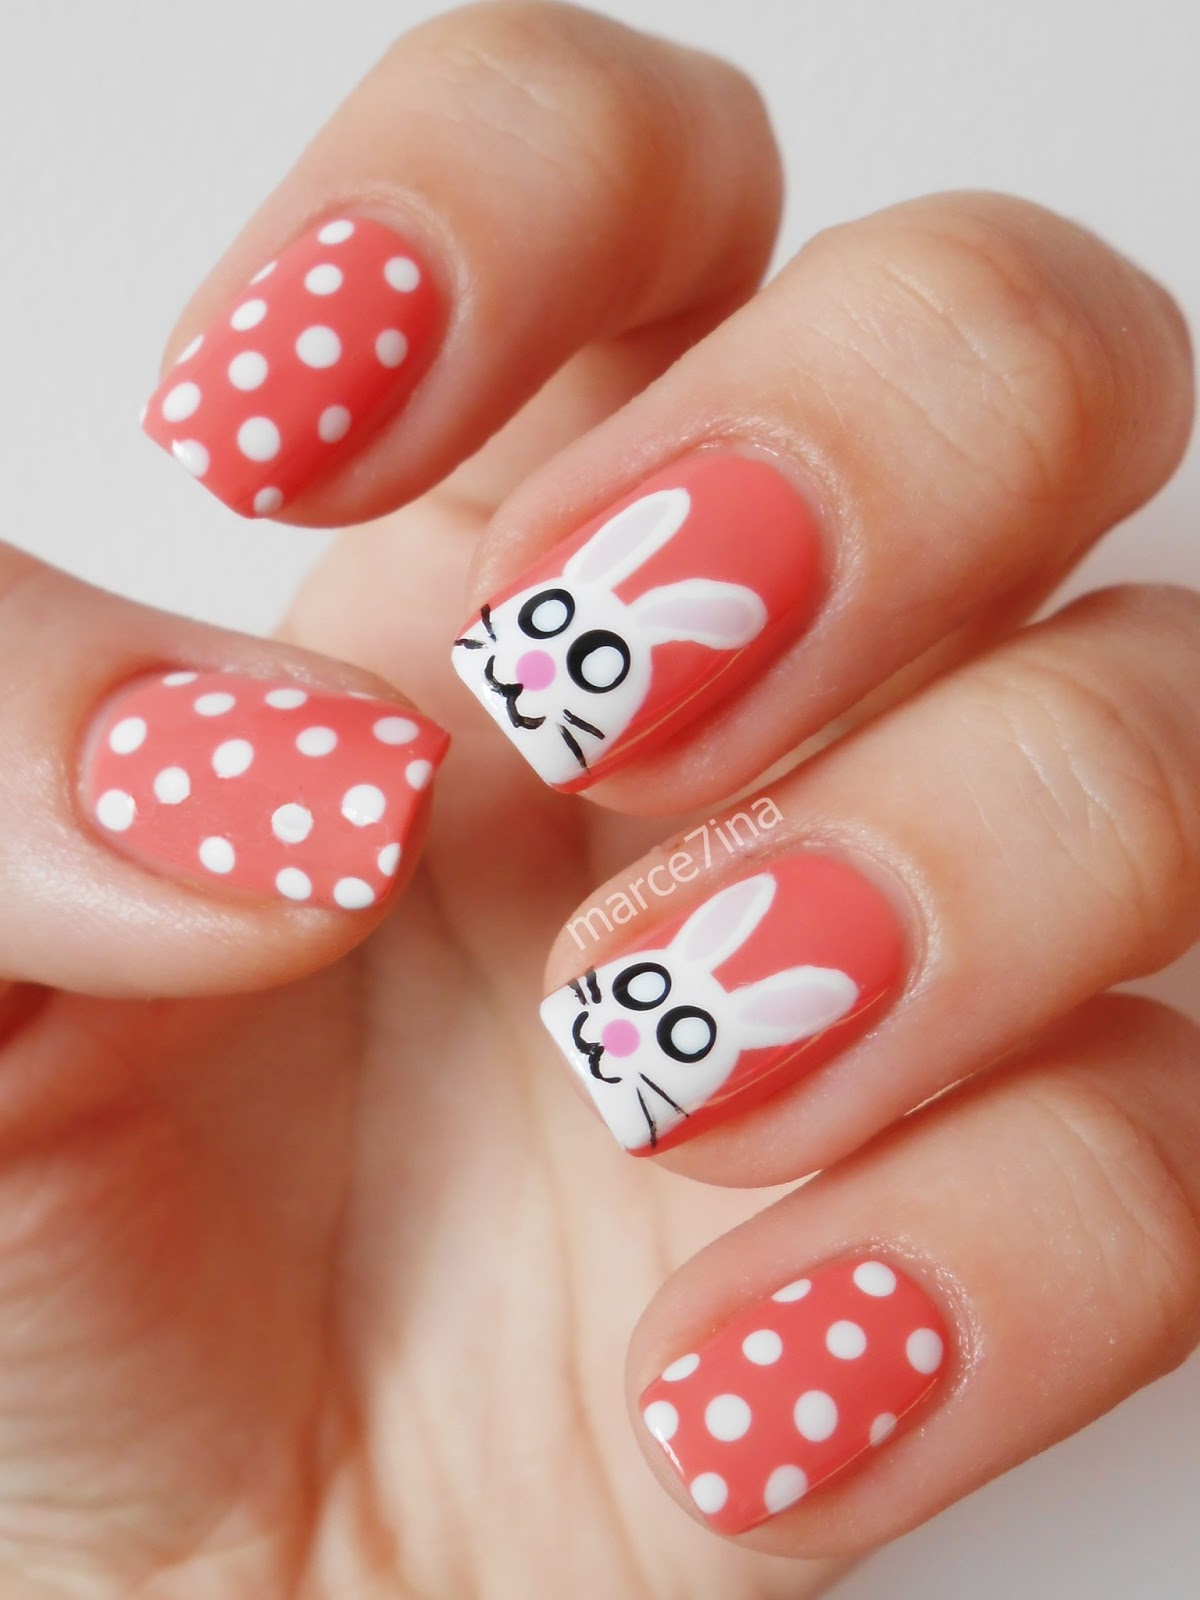 Nail Designs Products More: 9 Simple Easter Nail Art Designs With Pictures